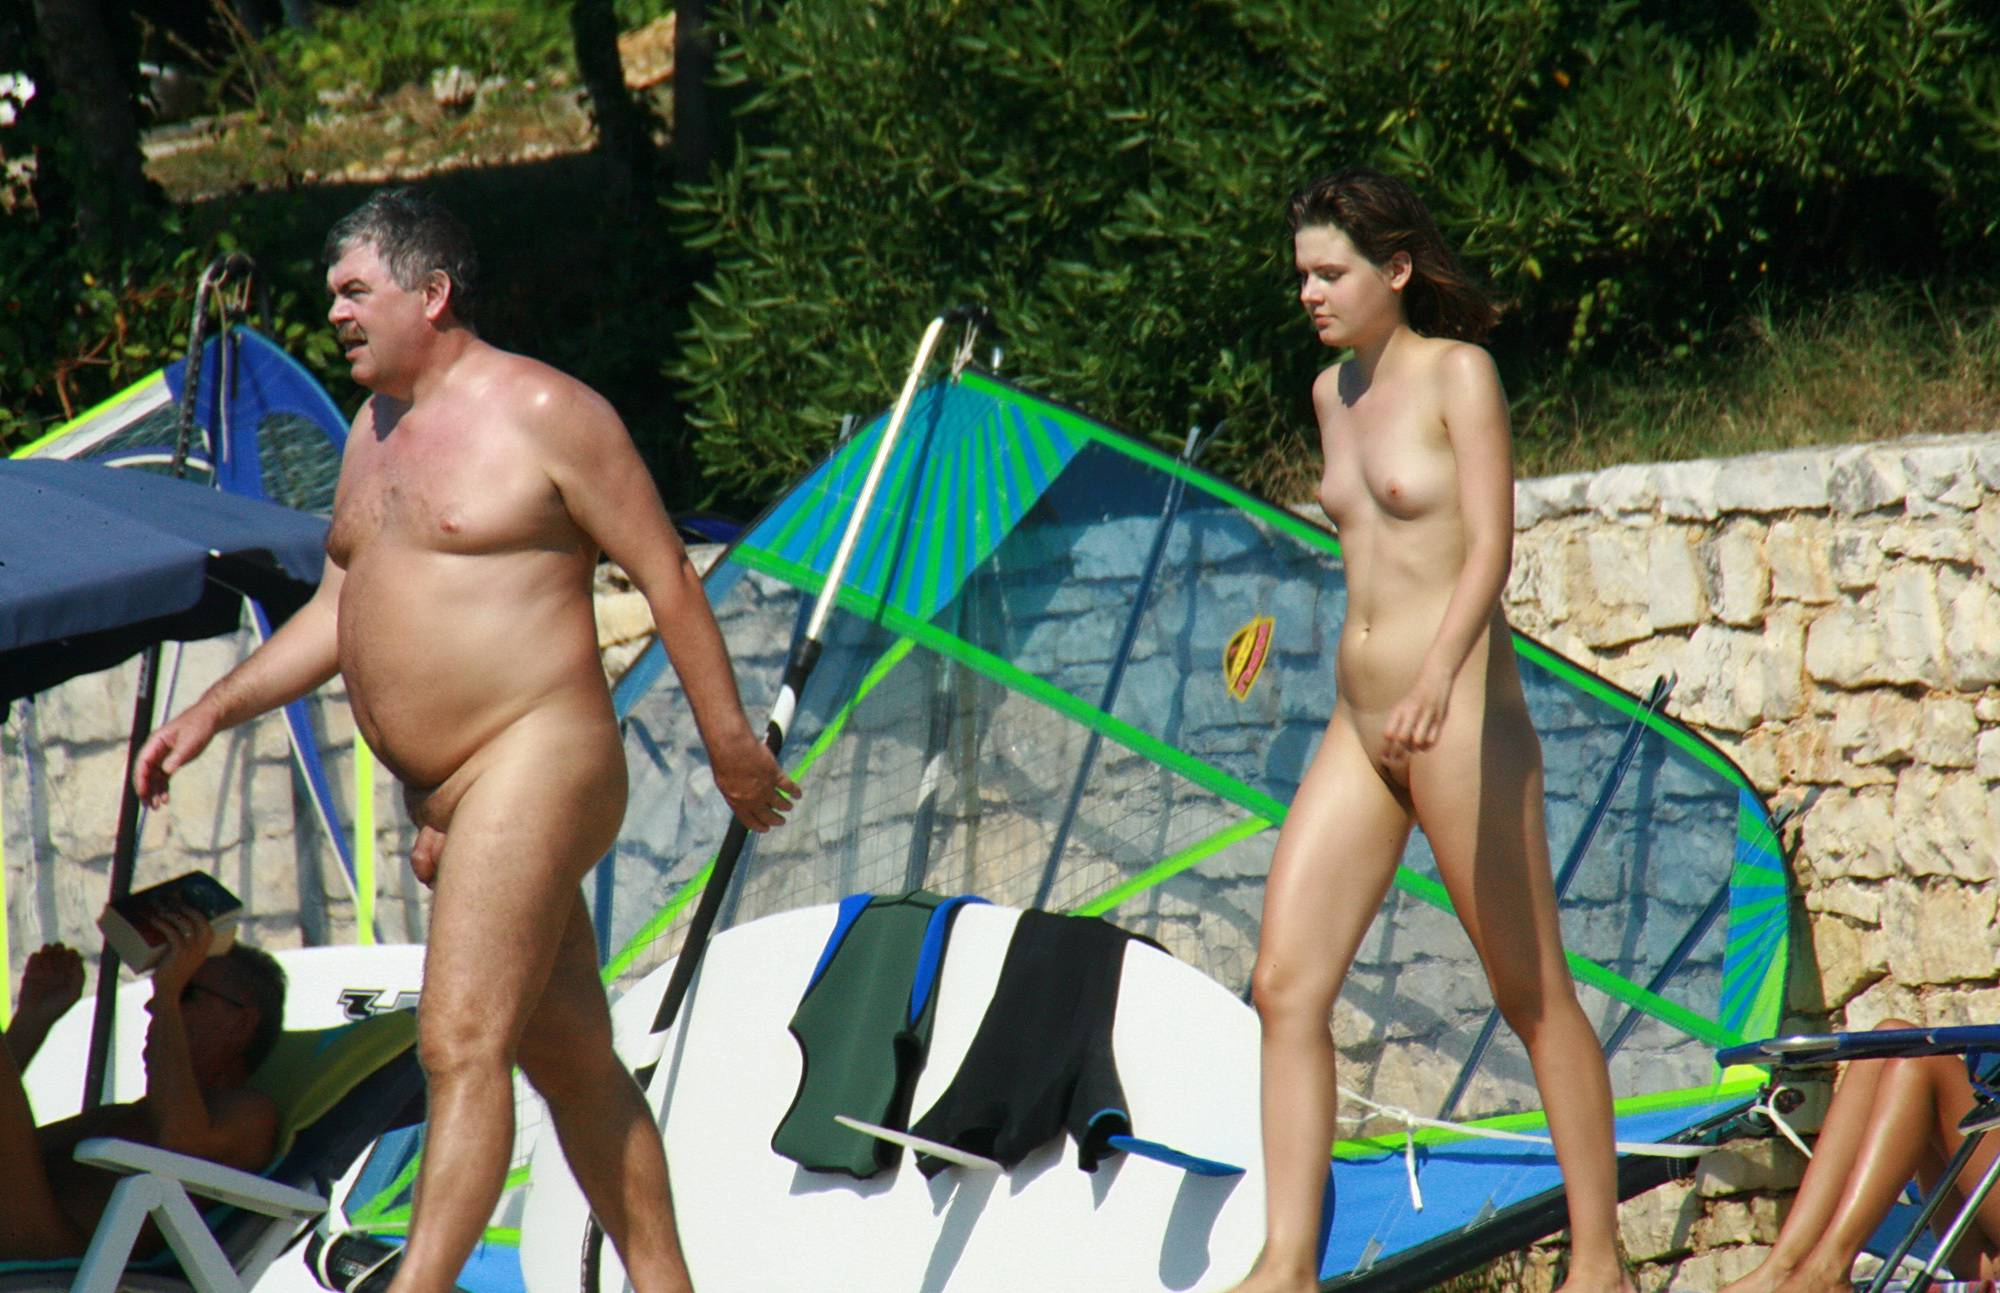 Nudist Photos Going For A Quick Dip - 2